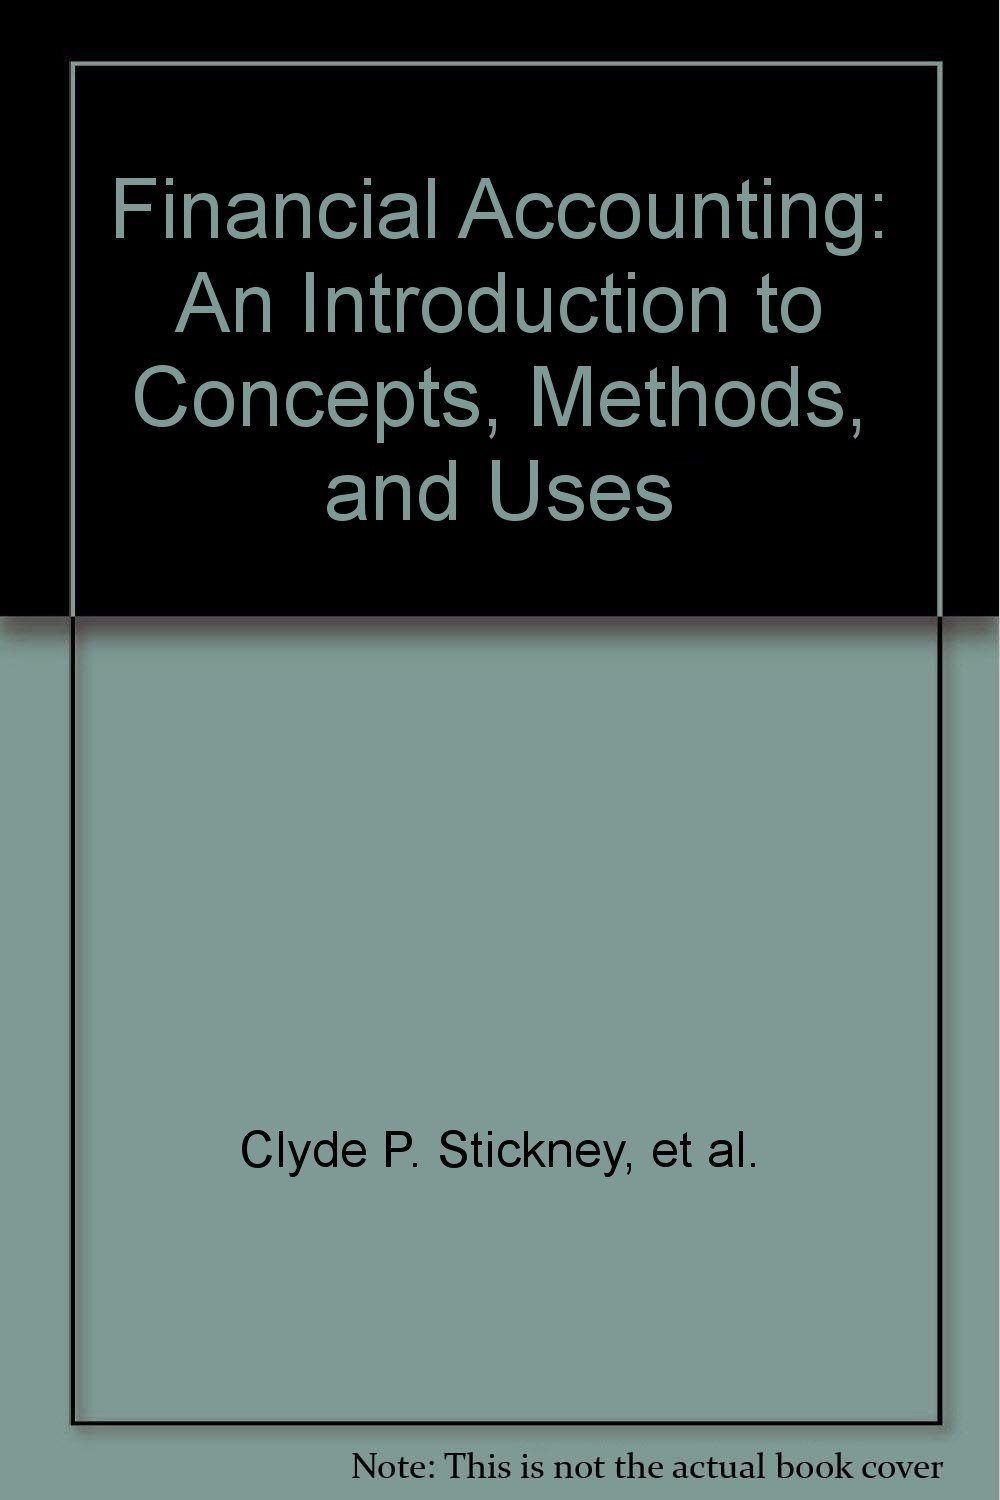 Financial Accounting: An Introduction to Concepts, Methods, and Uses: et  al. Clyde P. Stickney: Amazon.com: Books